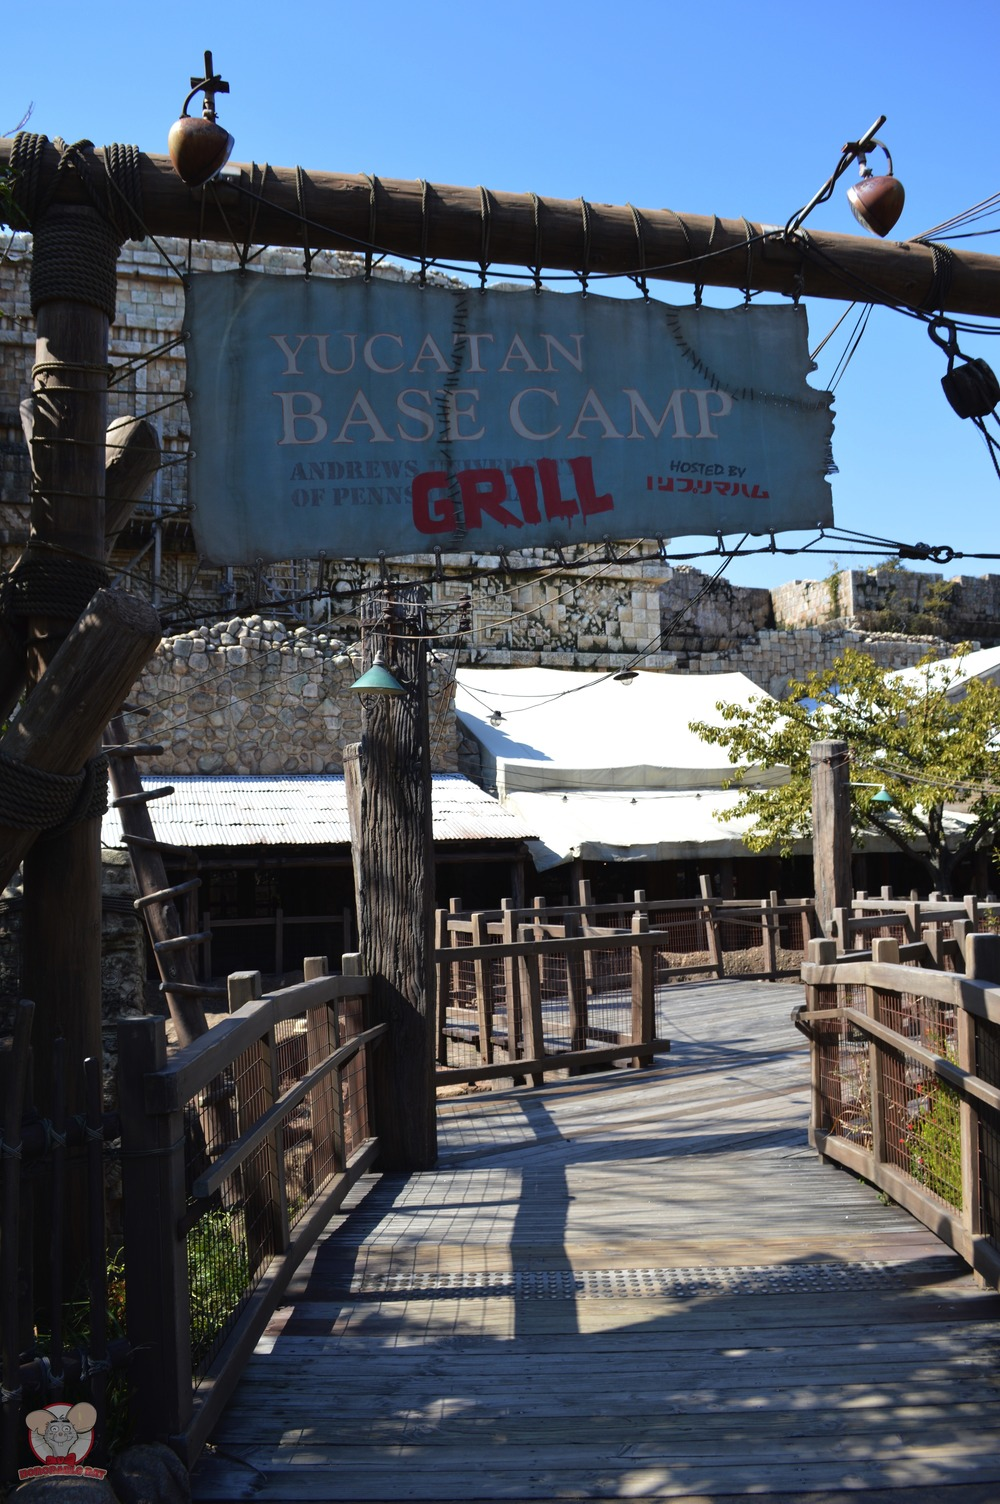 Yucatan Base Camp Grill